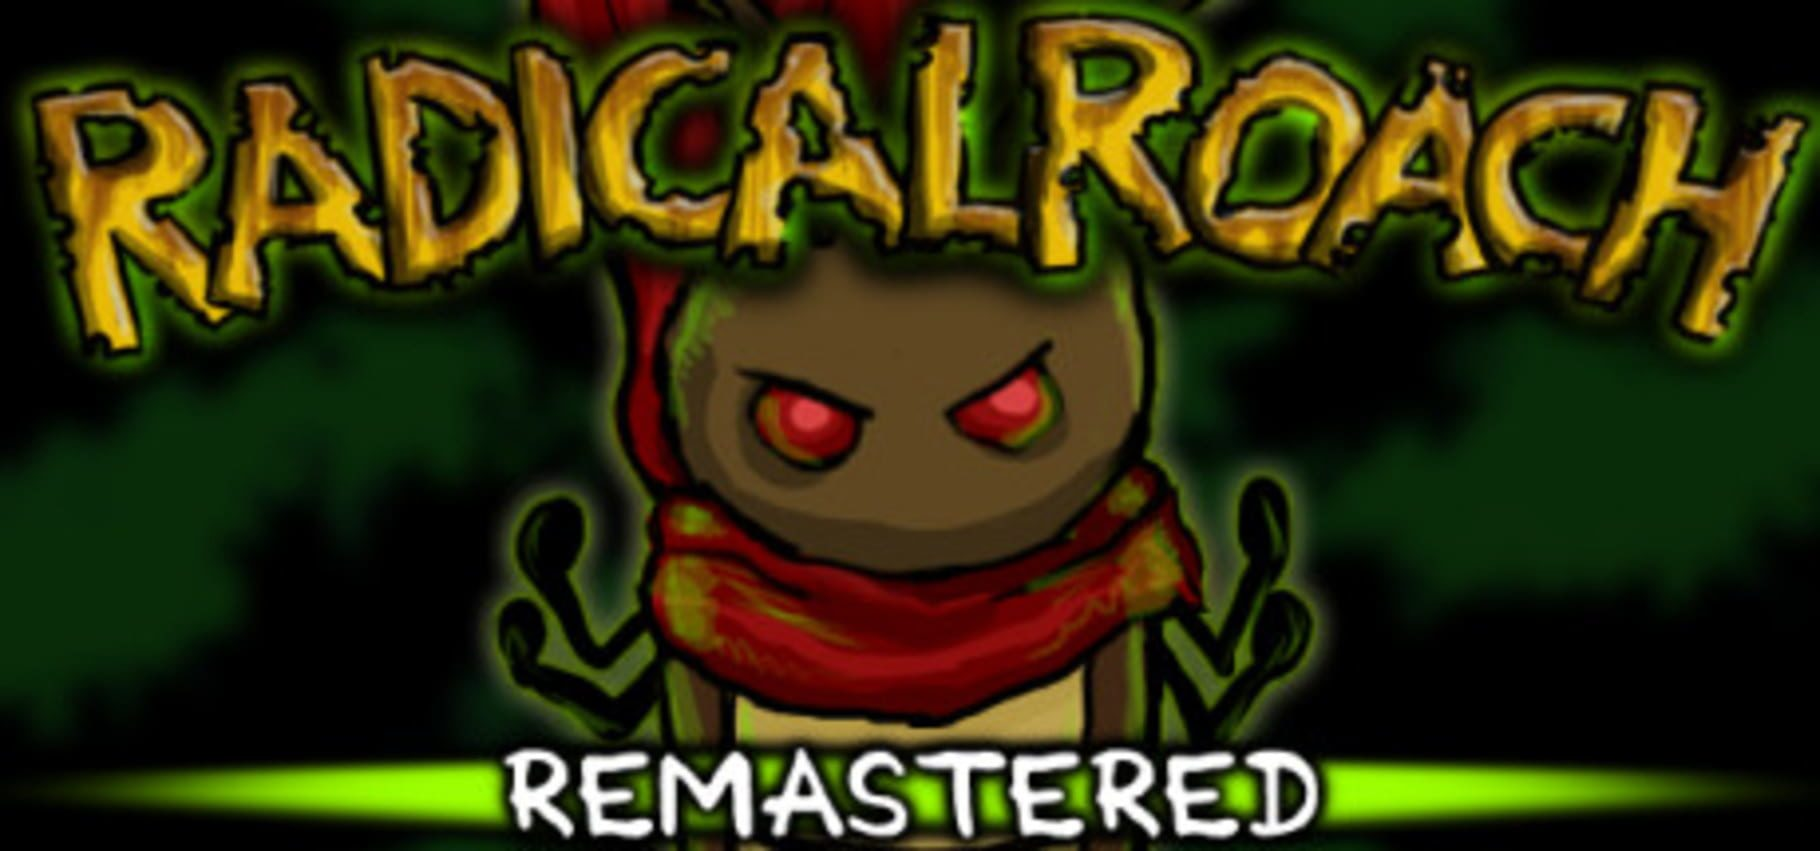 buy RADical ROACH Remastered cd key for all platform